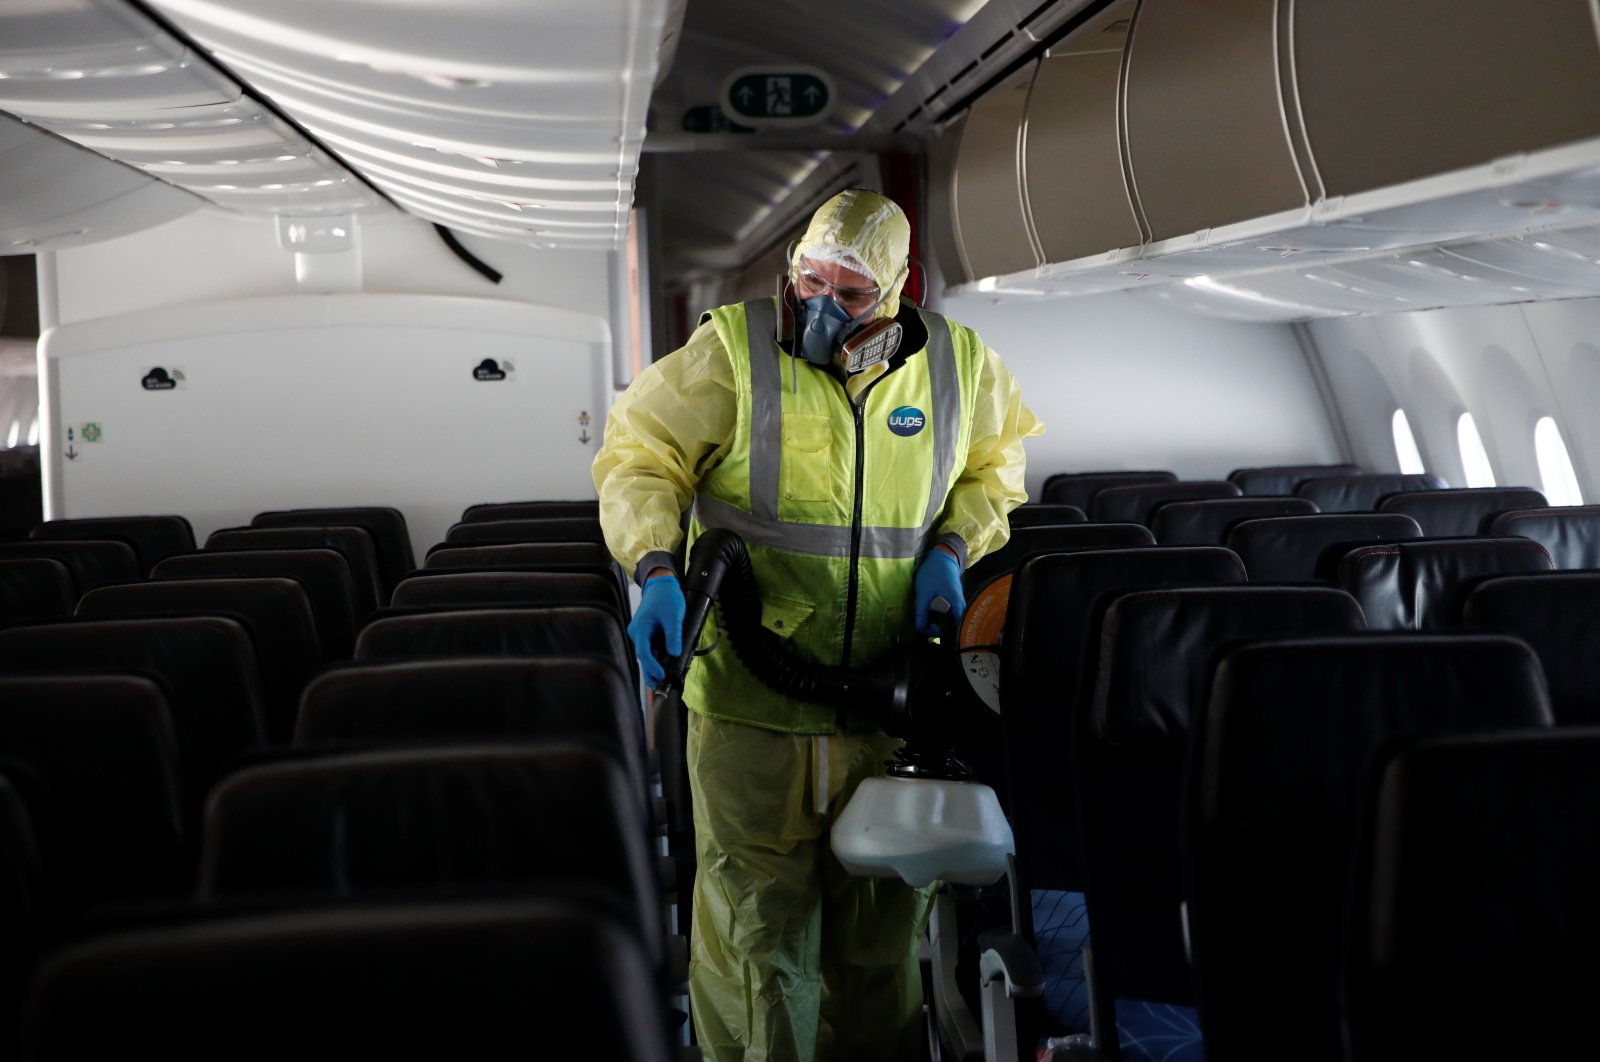 A worker, wearing a protective suit, sprays disinfectant inside an Air France Boeing 787 aircraft during a presentation of new security and health measures at Paris Charles de Gaulle airport in Roissy-en-France during the outbreak of the coronavirus in France, May 6, 2020. (Reuters Photo)